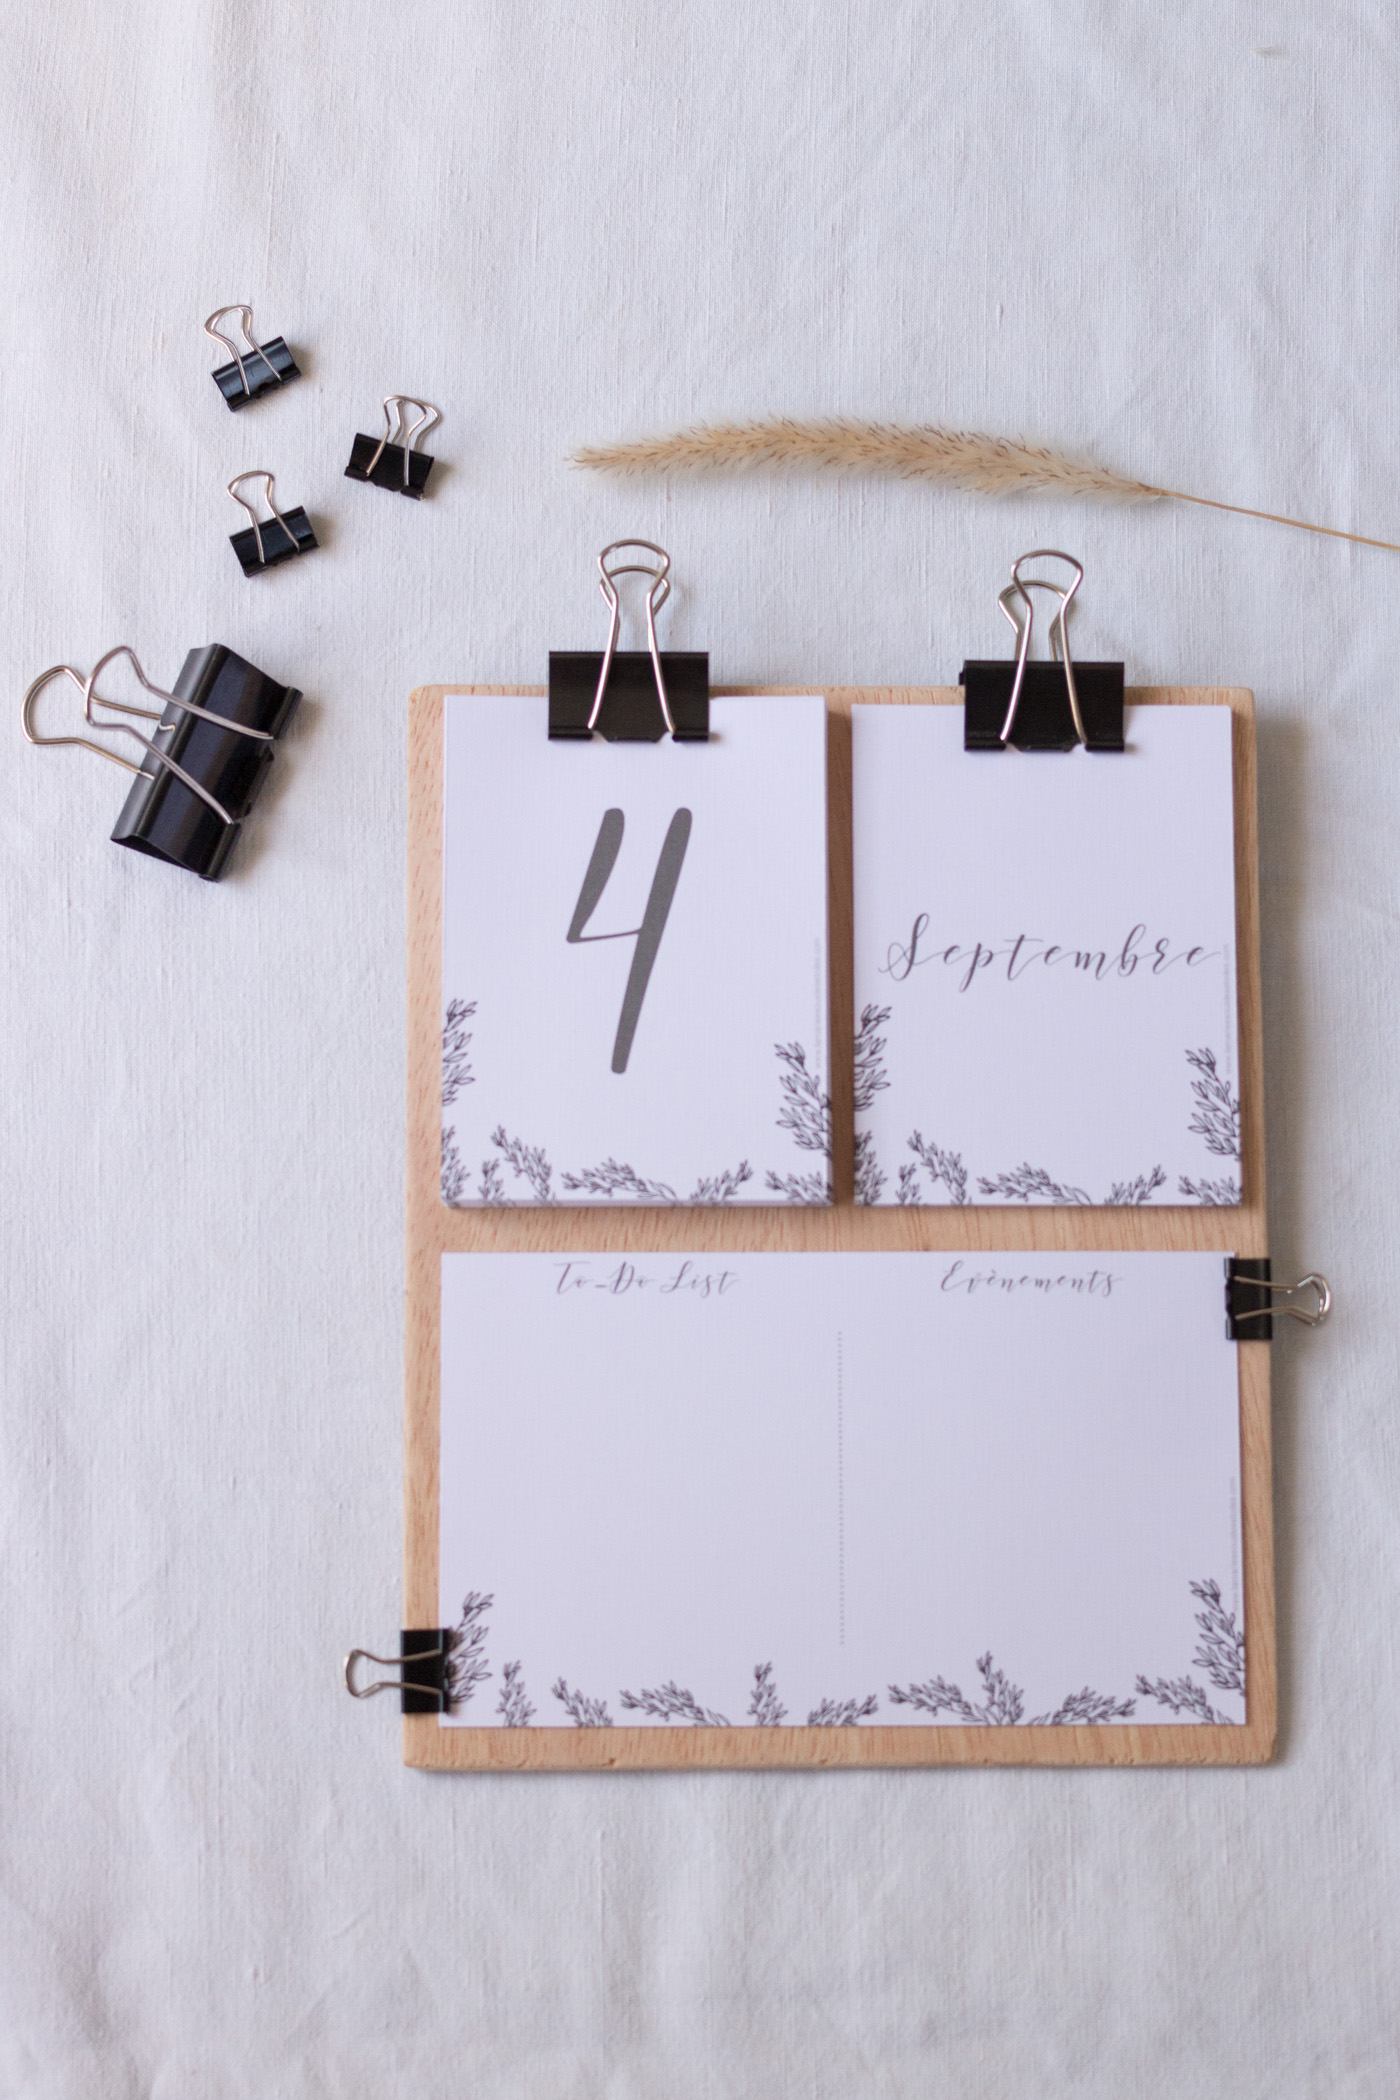 DiY Printable Calendrier DiY esprit kinfolk a imprimermade by La Mariee Sous Les Etoiles x Make My Wed-23